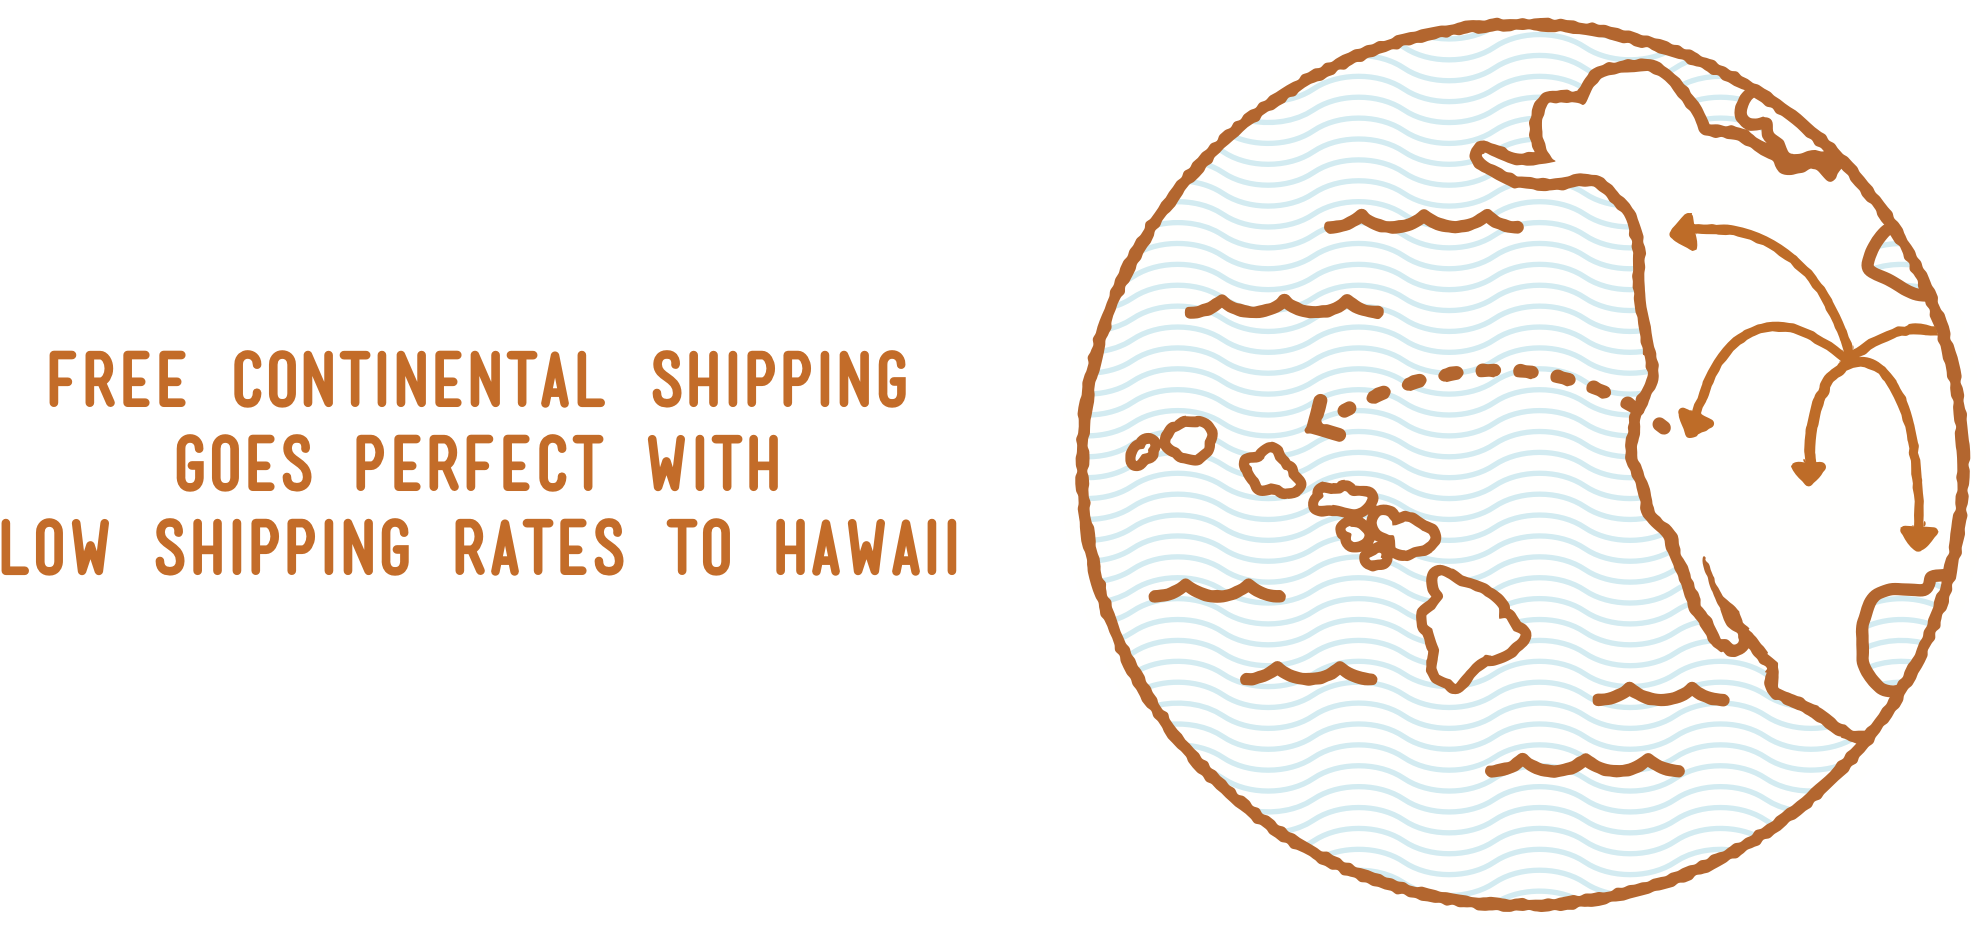 Free Mainland Shipping goes perfect with Low Shipping Rates to Hawaii